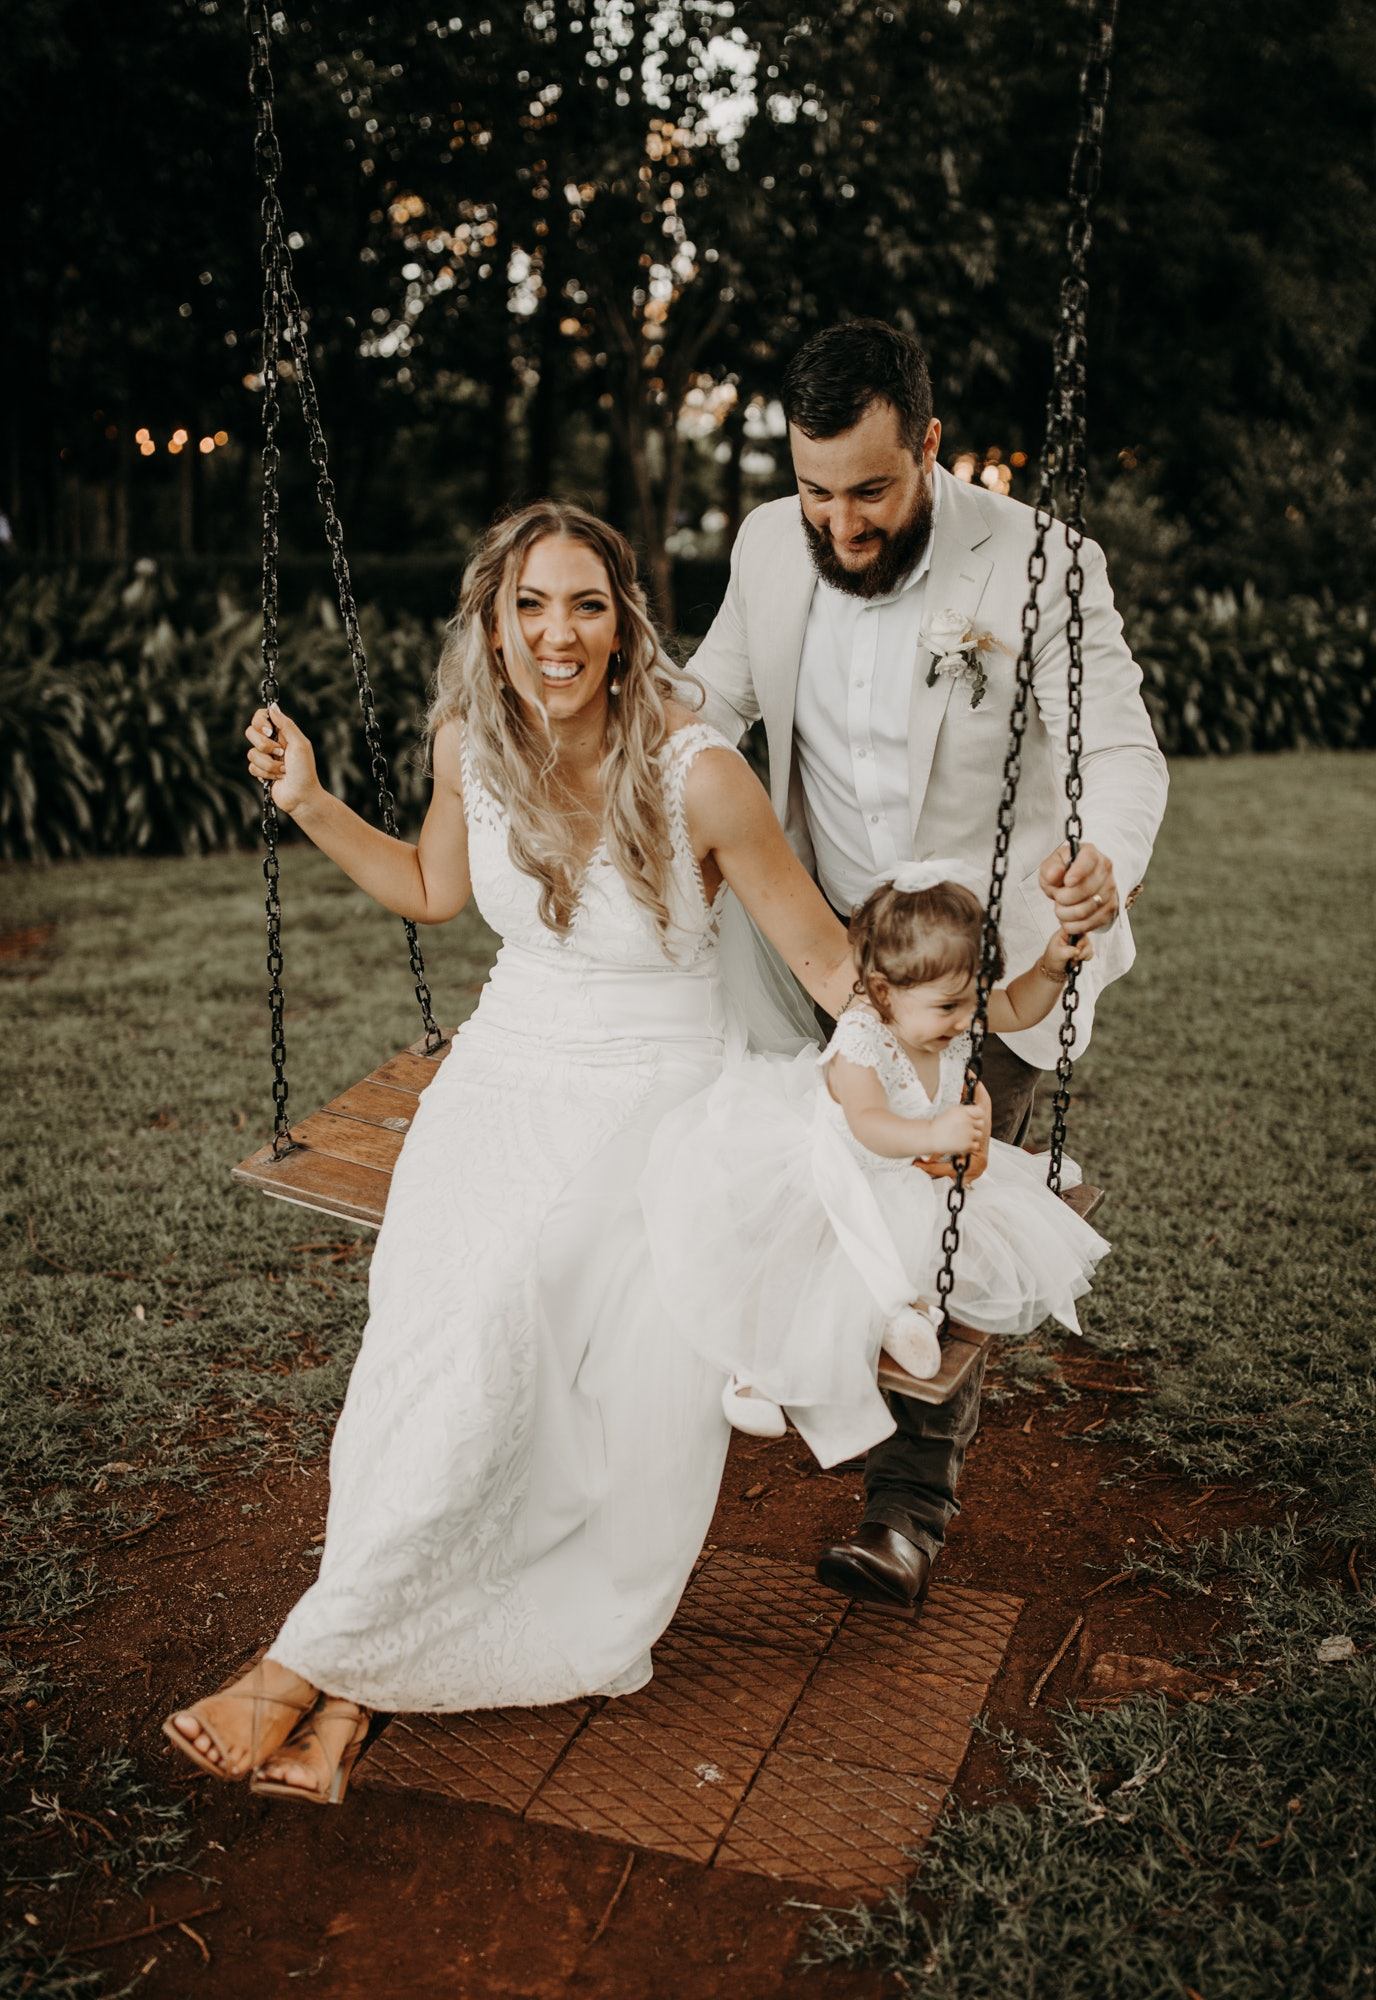 Bride and groom on swing with daughter